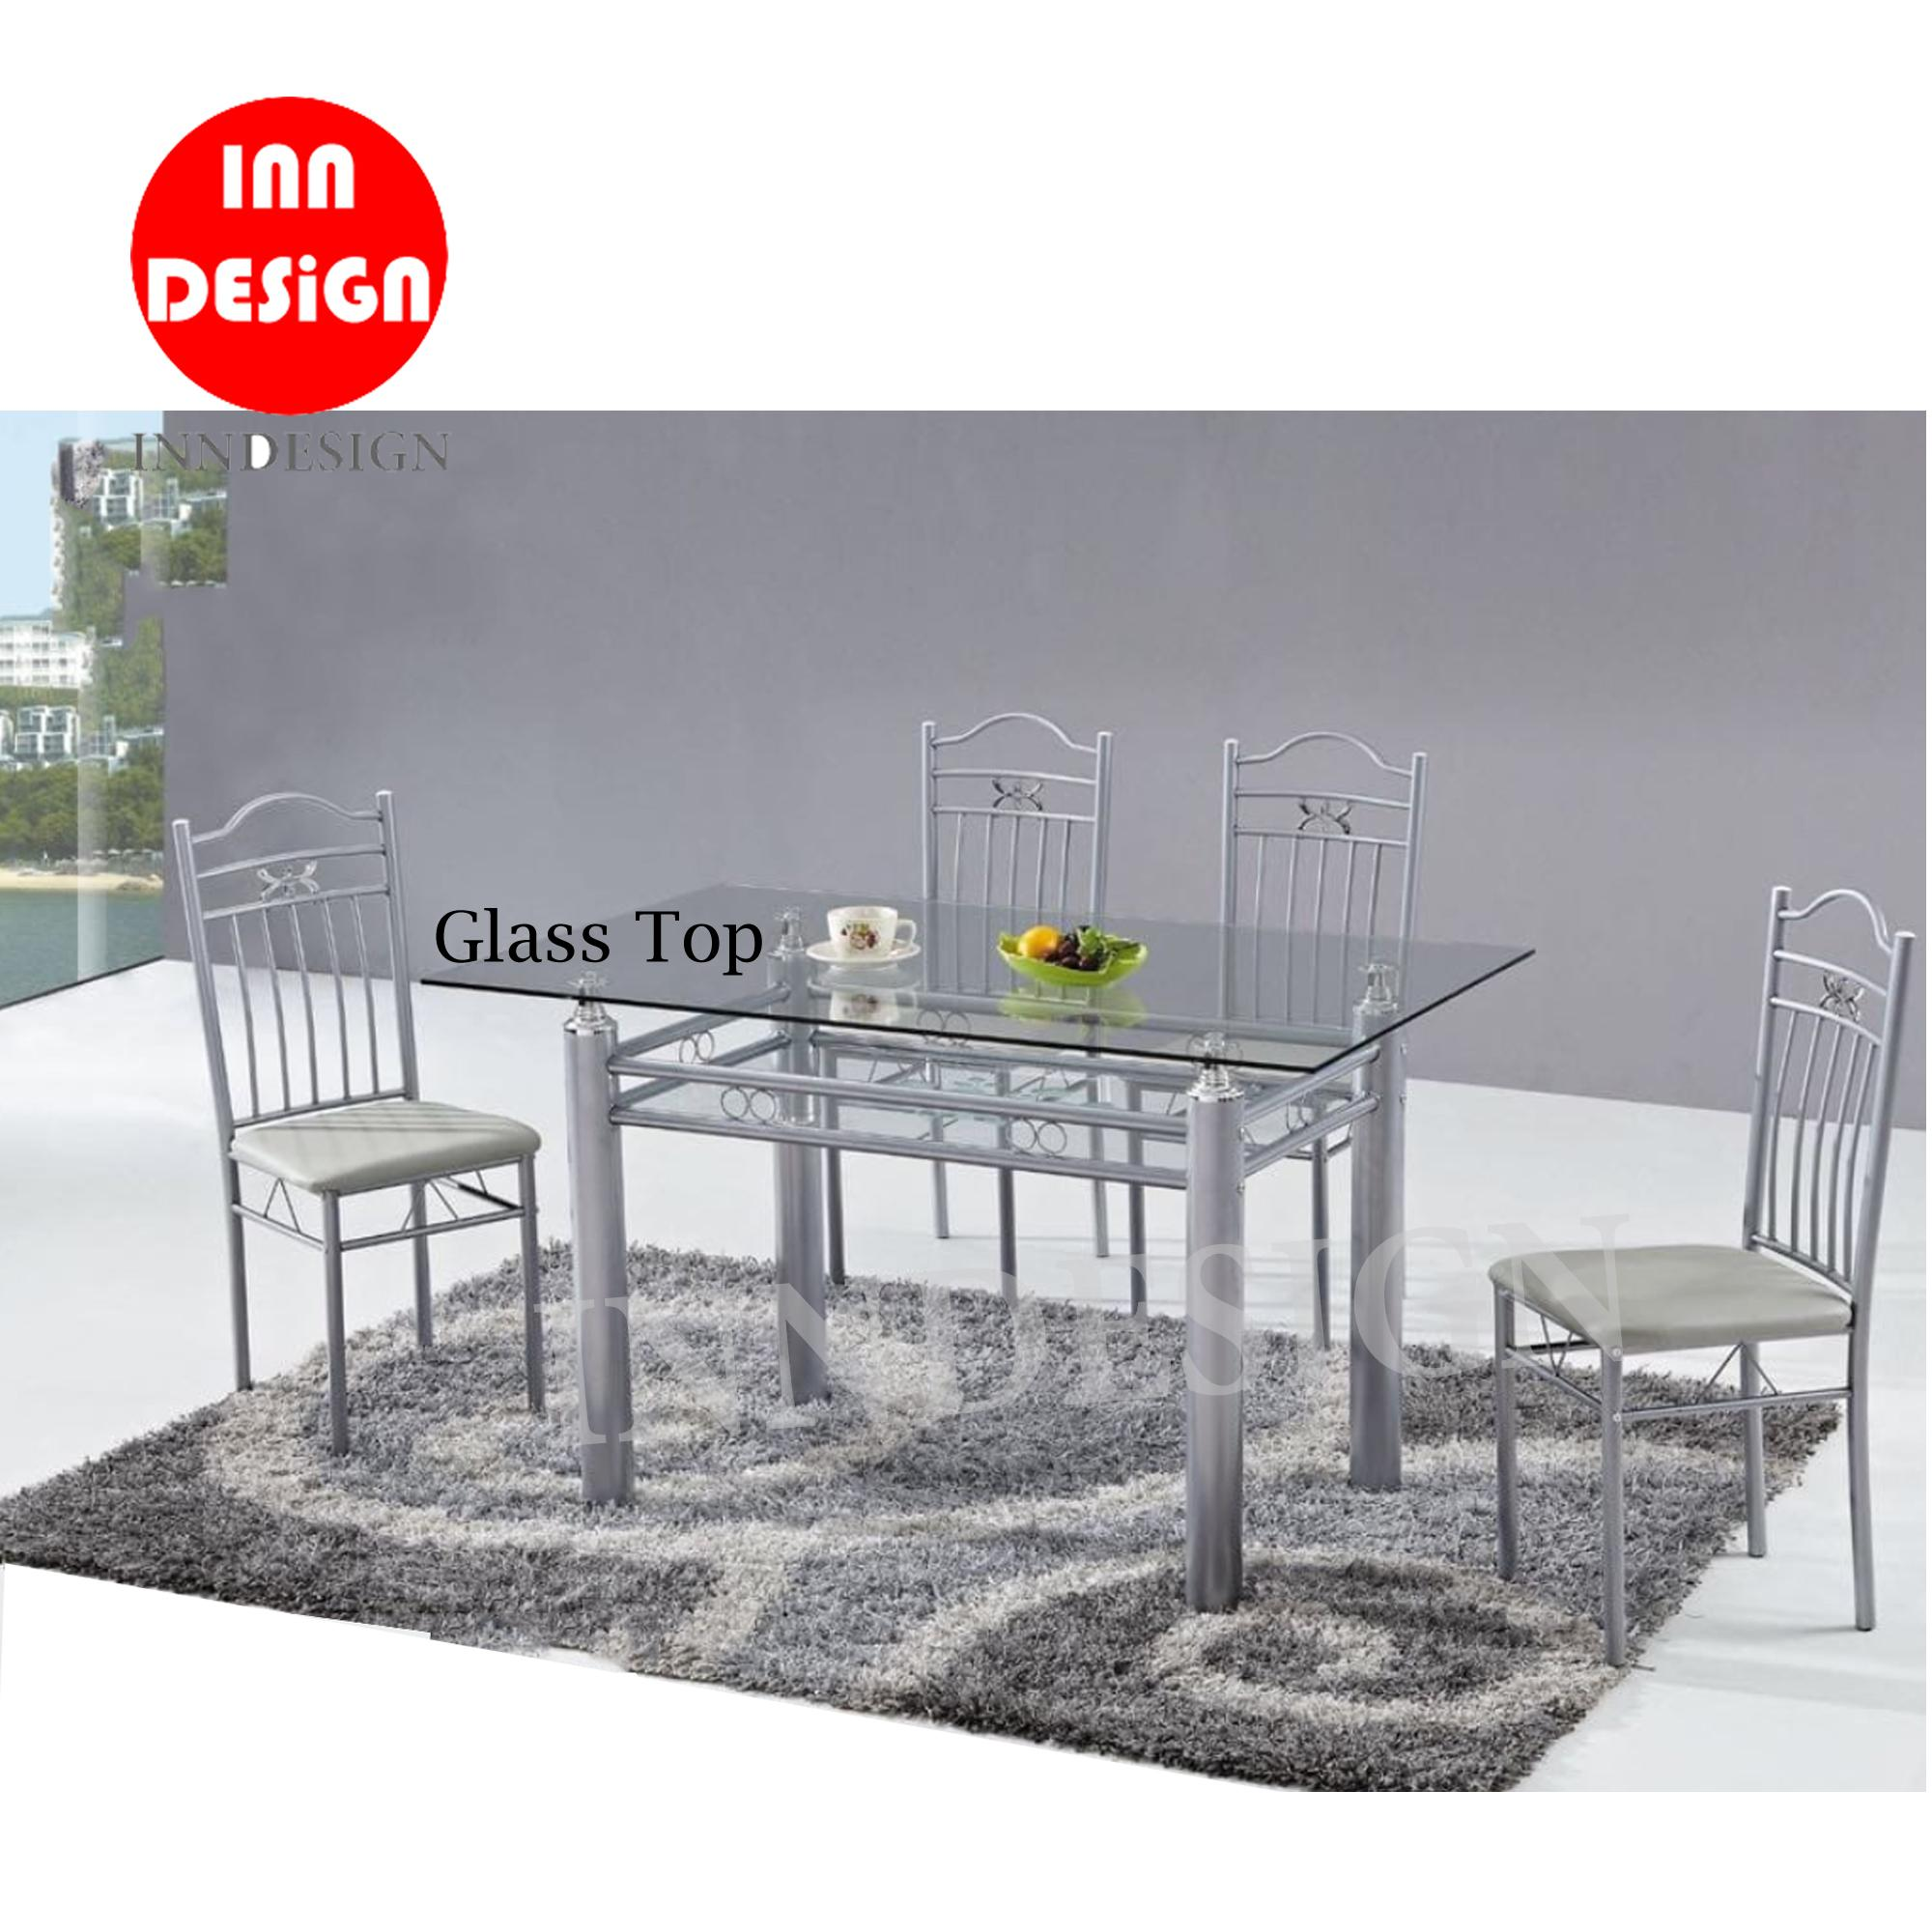 Nisha 1+4 Glass Top Dining Set (Free Delivery and Installation) (Deliver within 3 to 5 working days)